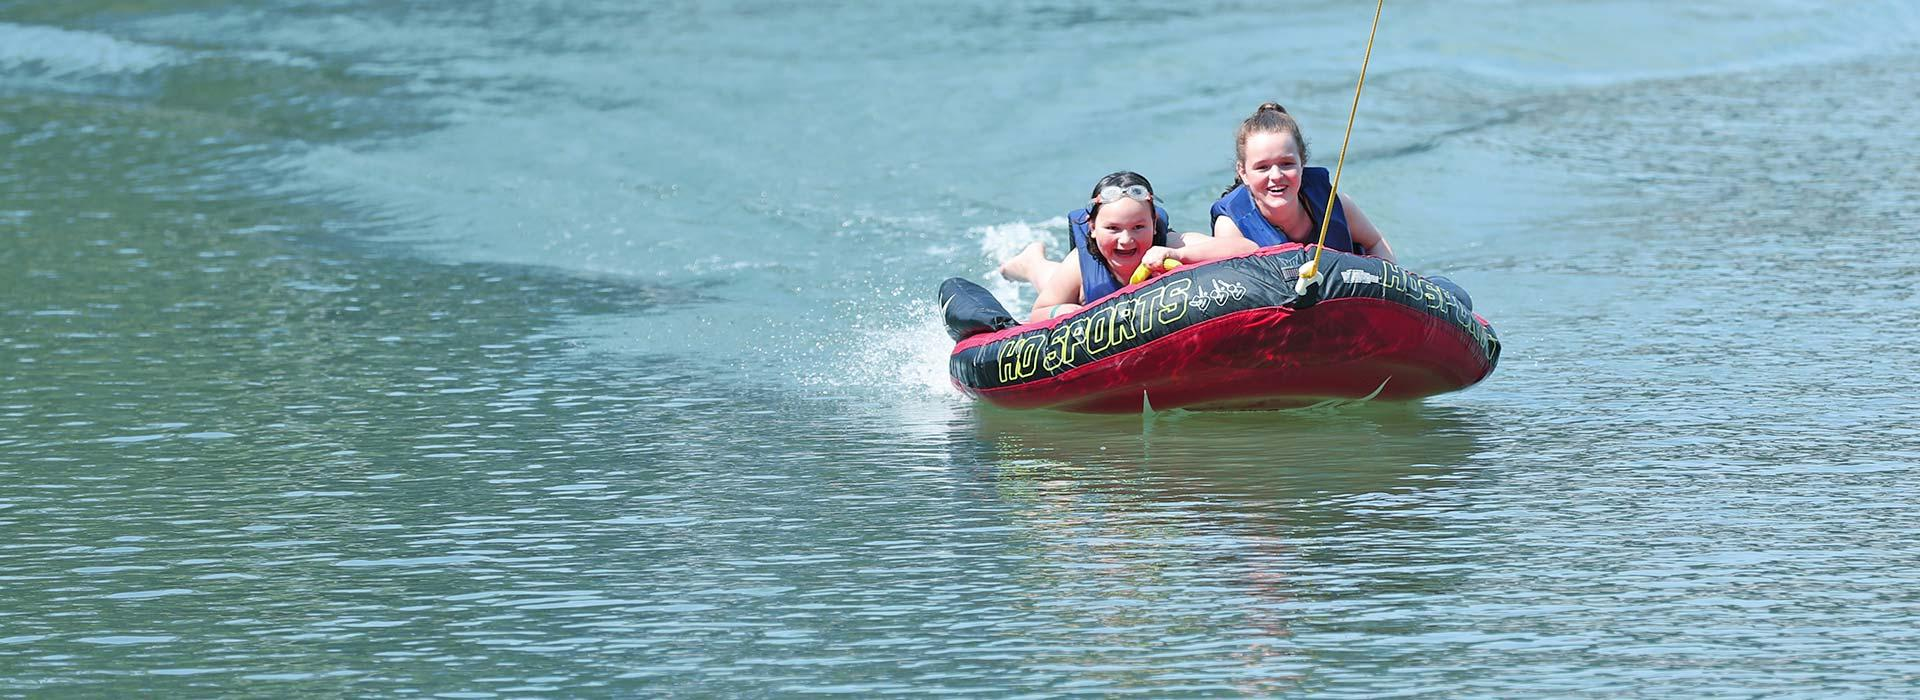 children on inner tube on the water